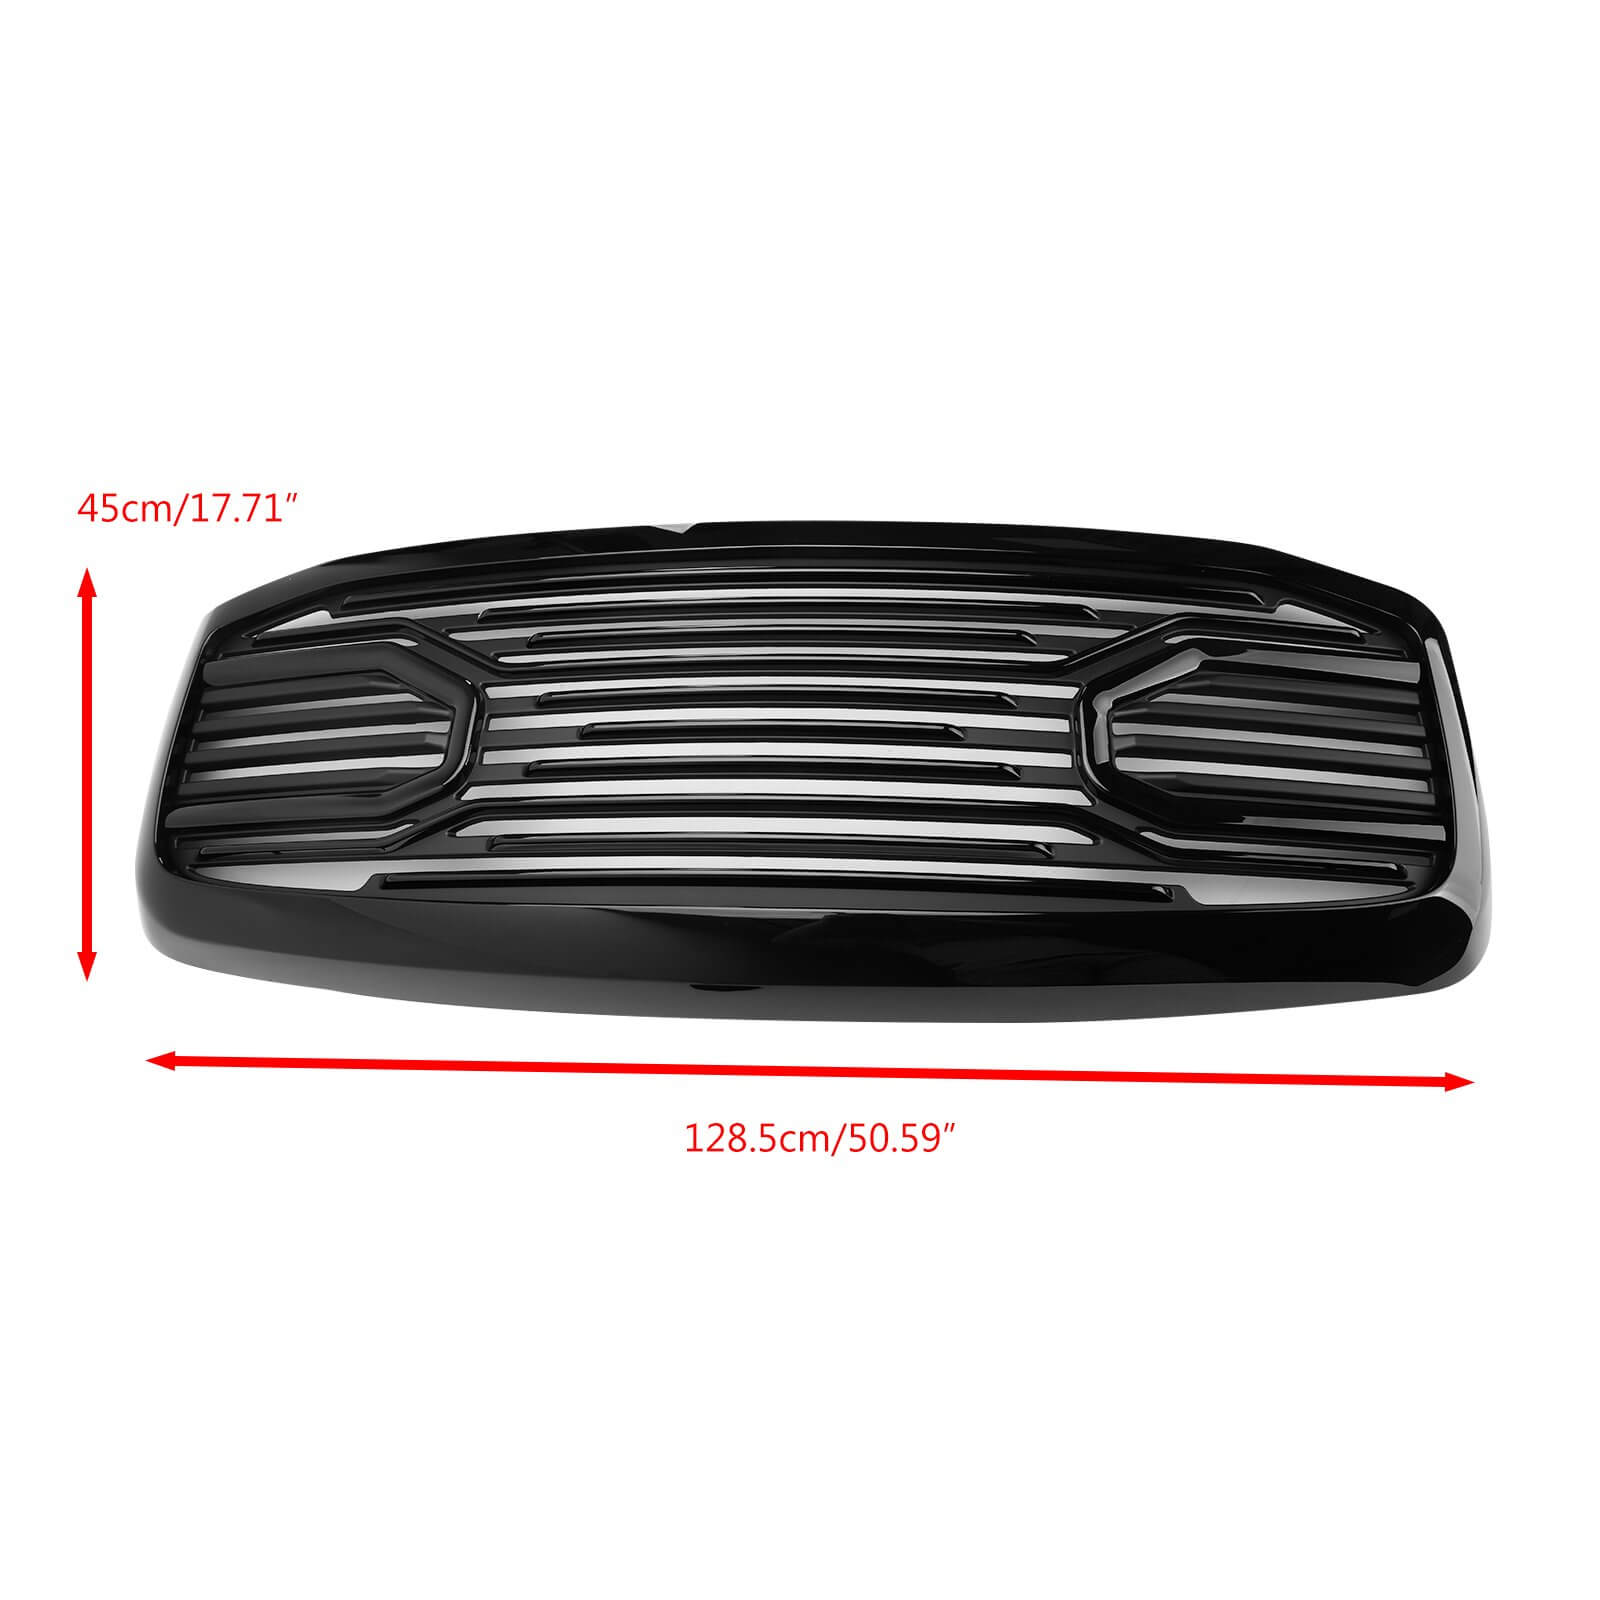 Big Horn Grille Replacement Mesh Front Grill Shell For Doge RAM 2500/ 3500/ 1500 Generic